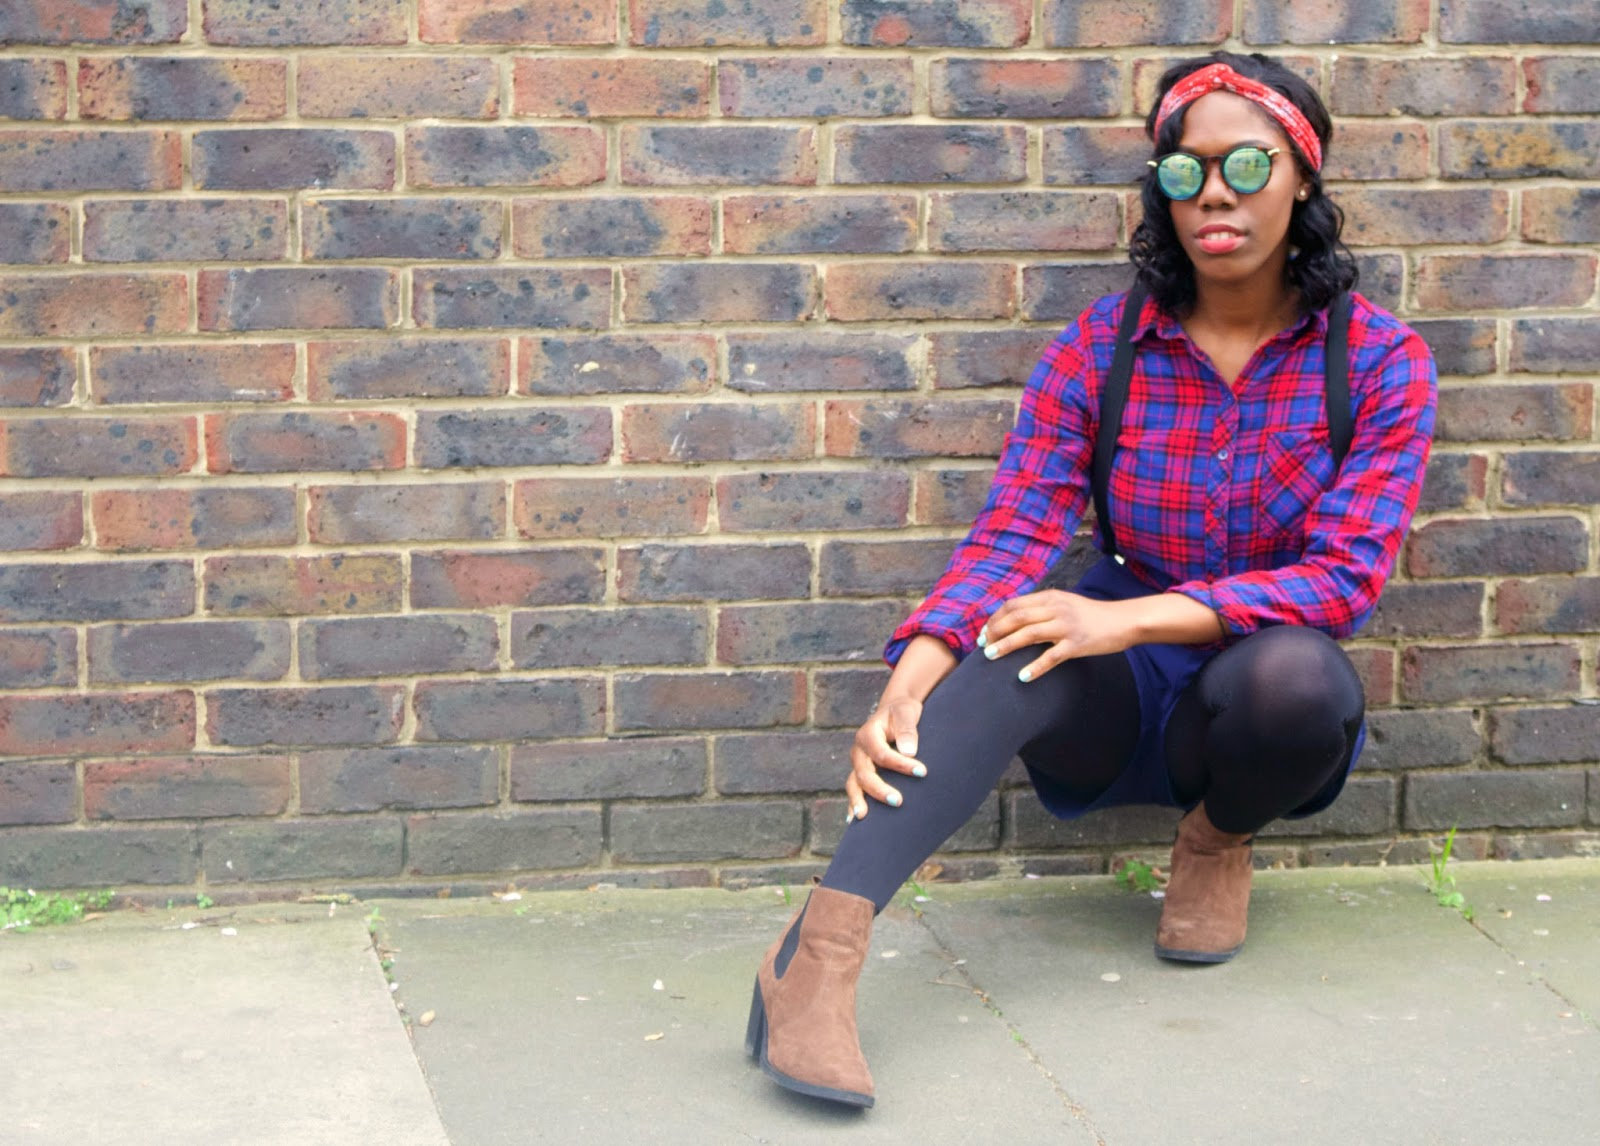 The Post Blogging Event Comedown, H&M checked shirt, H&M Red headband, ASOS green sunglasses, missguided navy high waisted shorts, black topshop braces, style blogger, fashion blogger, brick wall, uk blogger, black girls who blog, black girl magic, 100 ways to 30 Blog